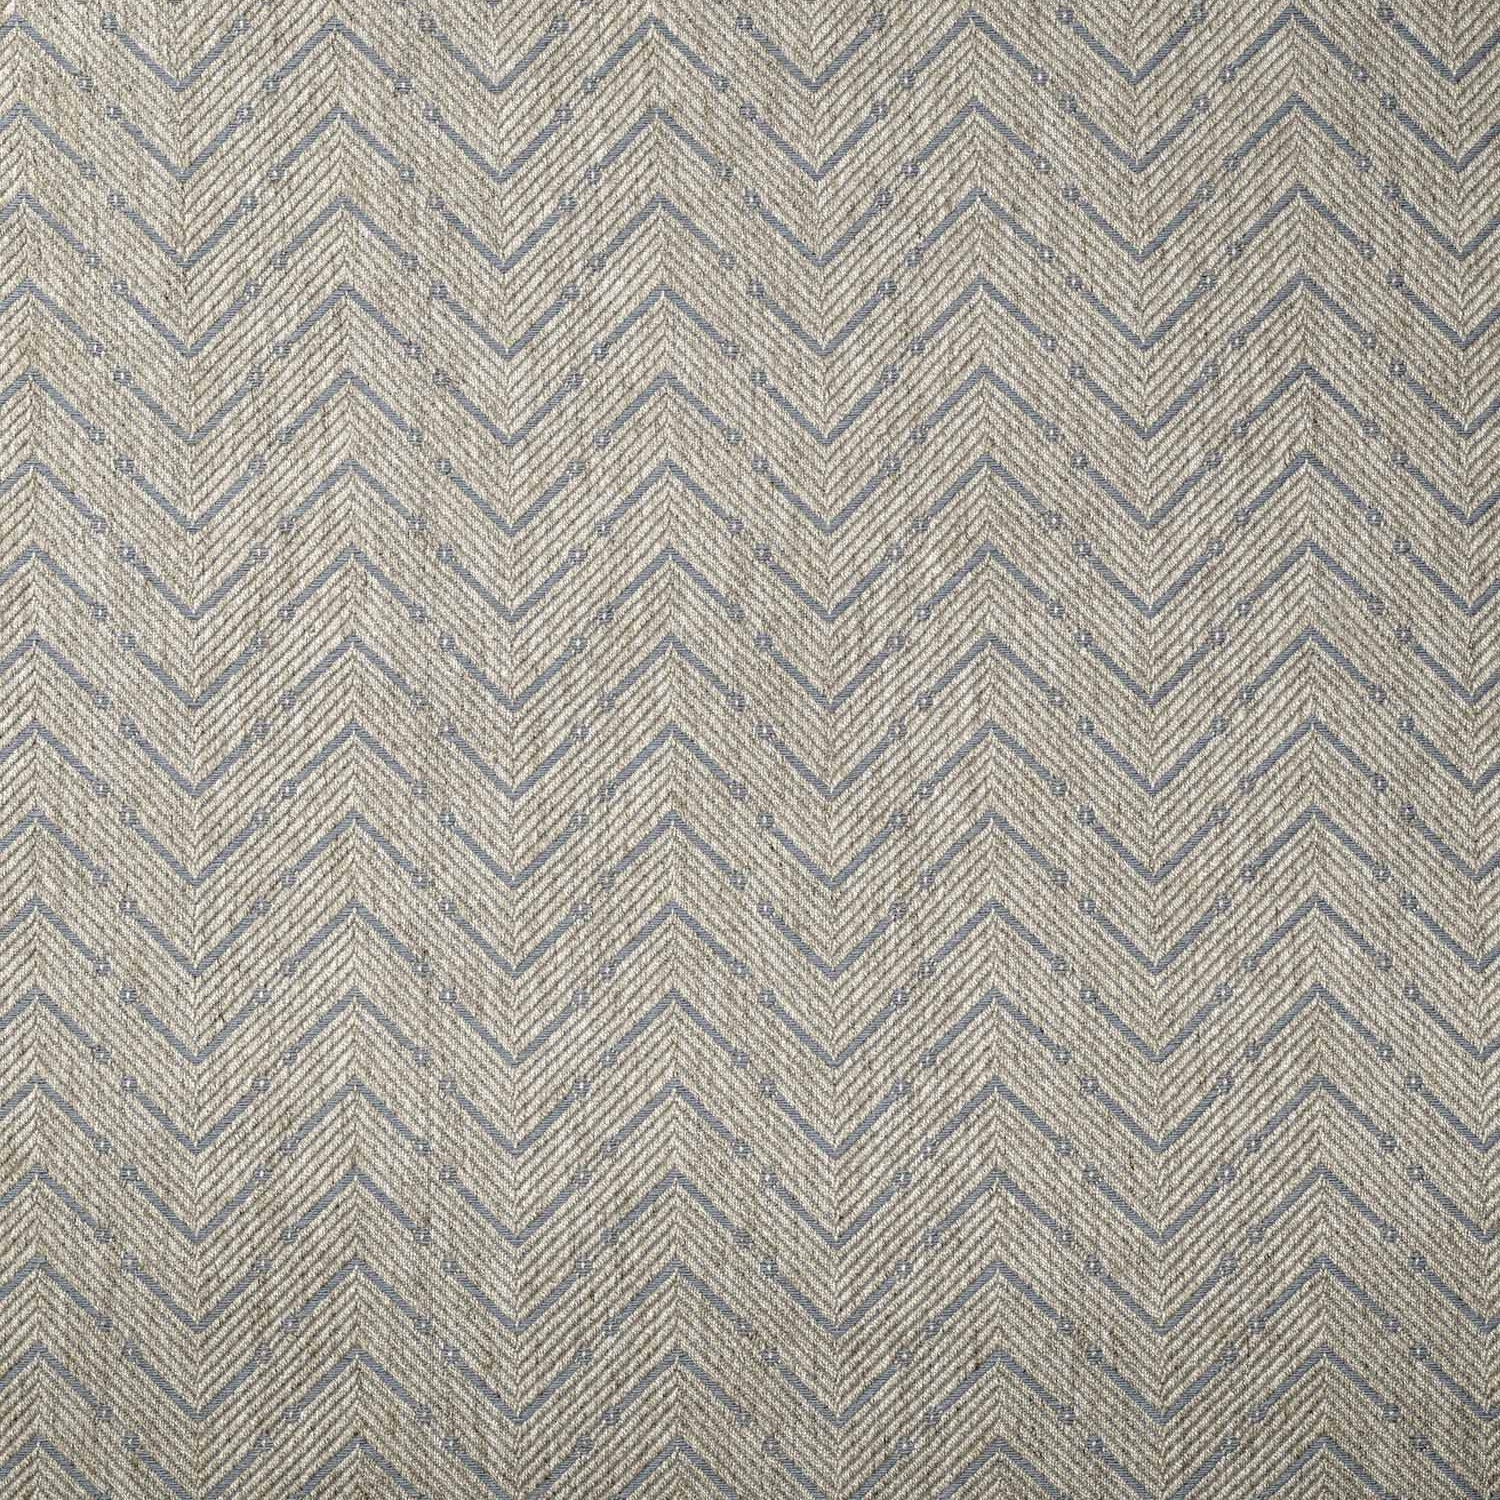 <p><strong>COLBY</strong>light blue 1210-01<a href=/the-winthorp-collection/colby-light-blue-1210-01>More →</a></p>